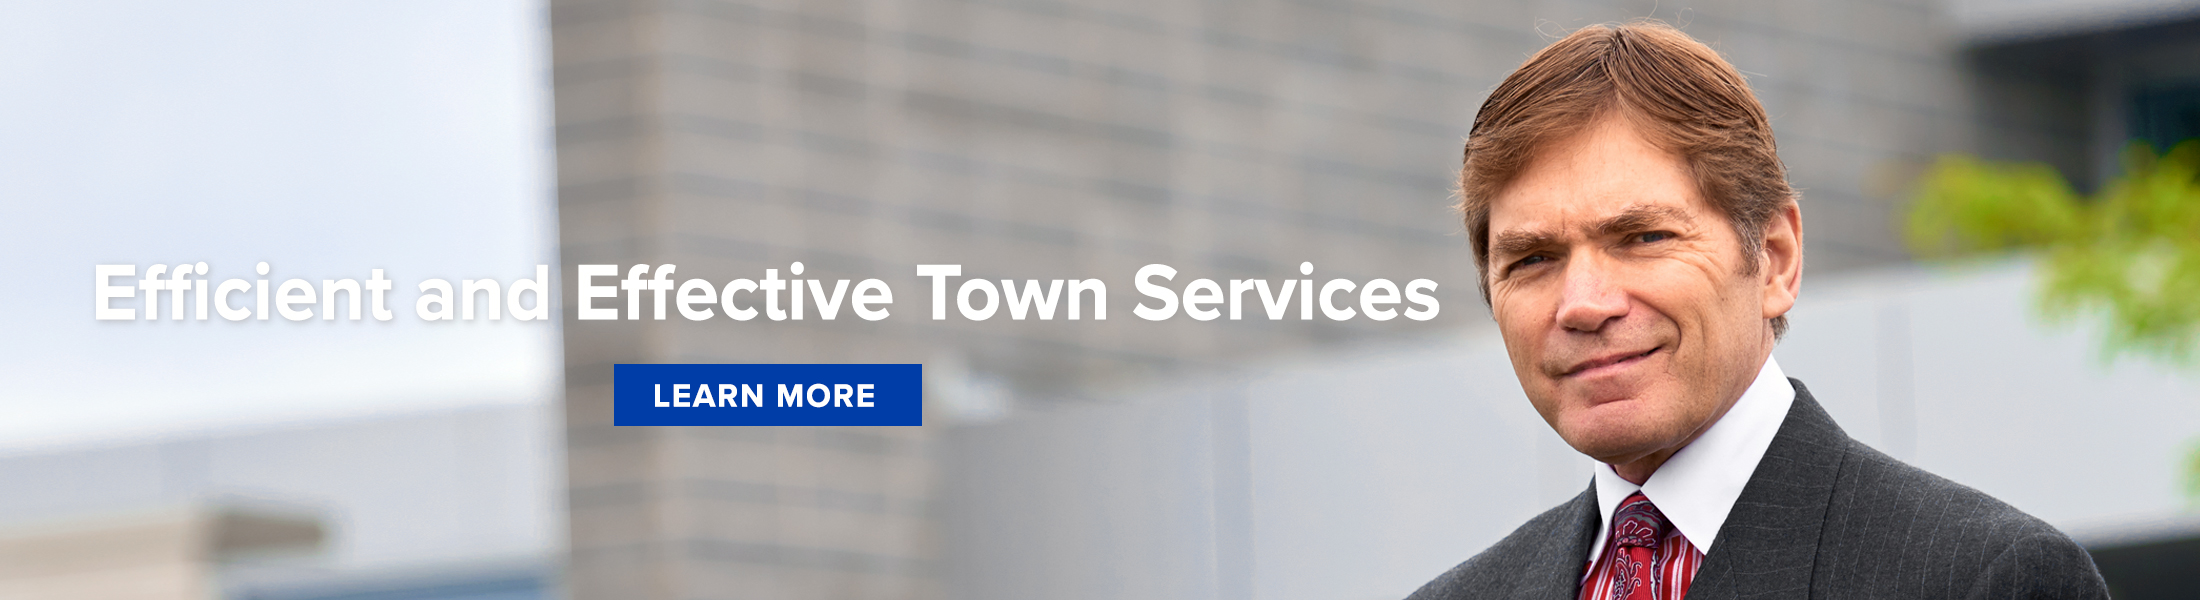 Efficient and Effective Town Services